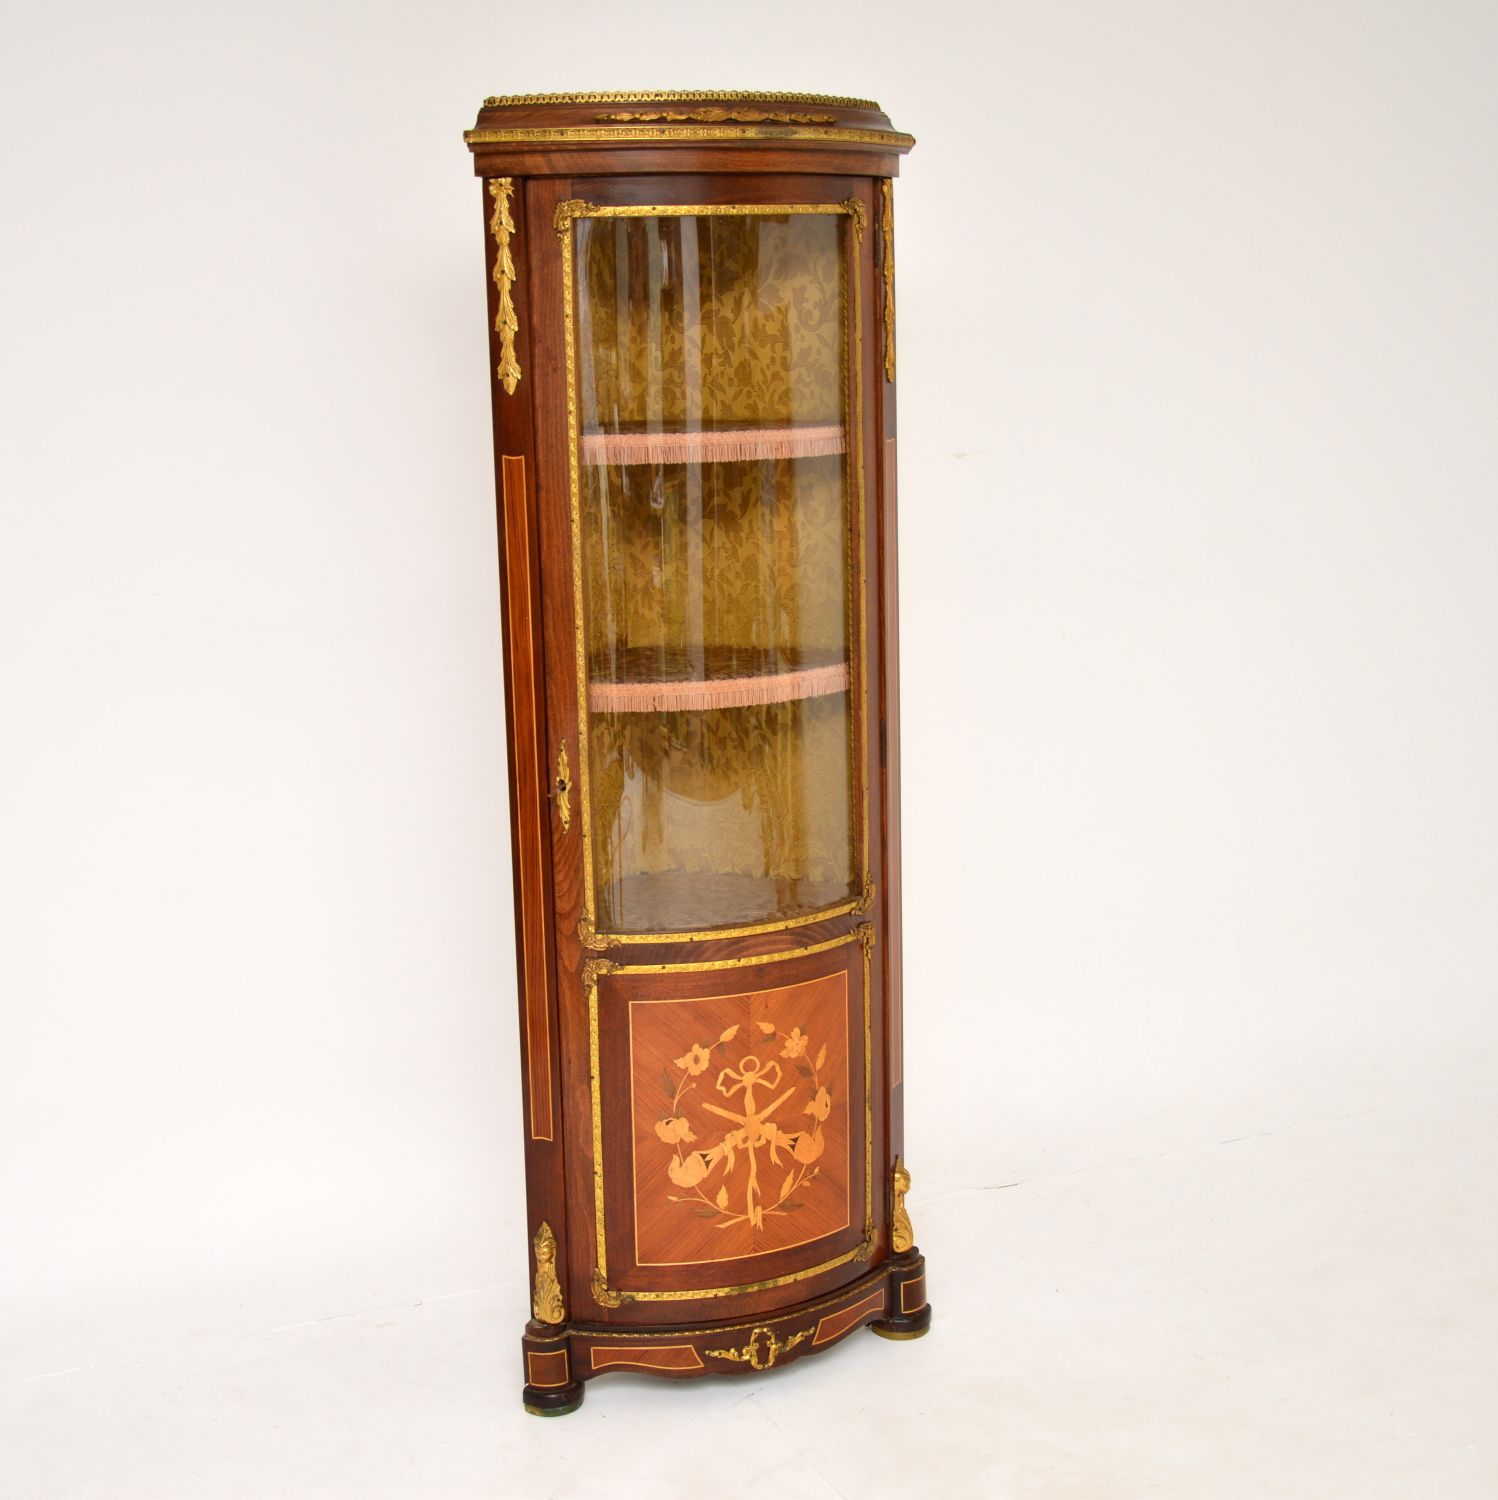 antique french inlaid marquetry corner cabinet